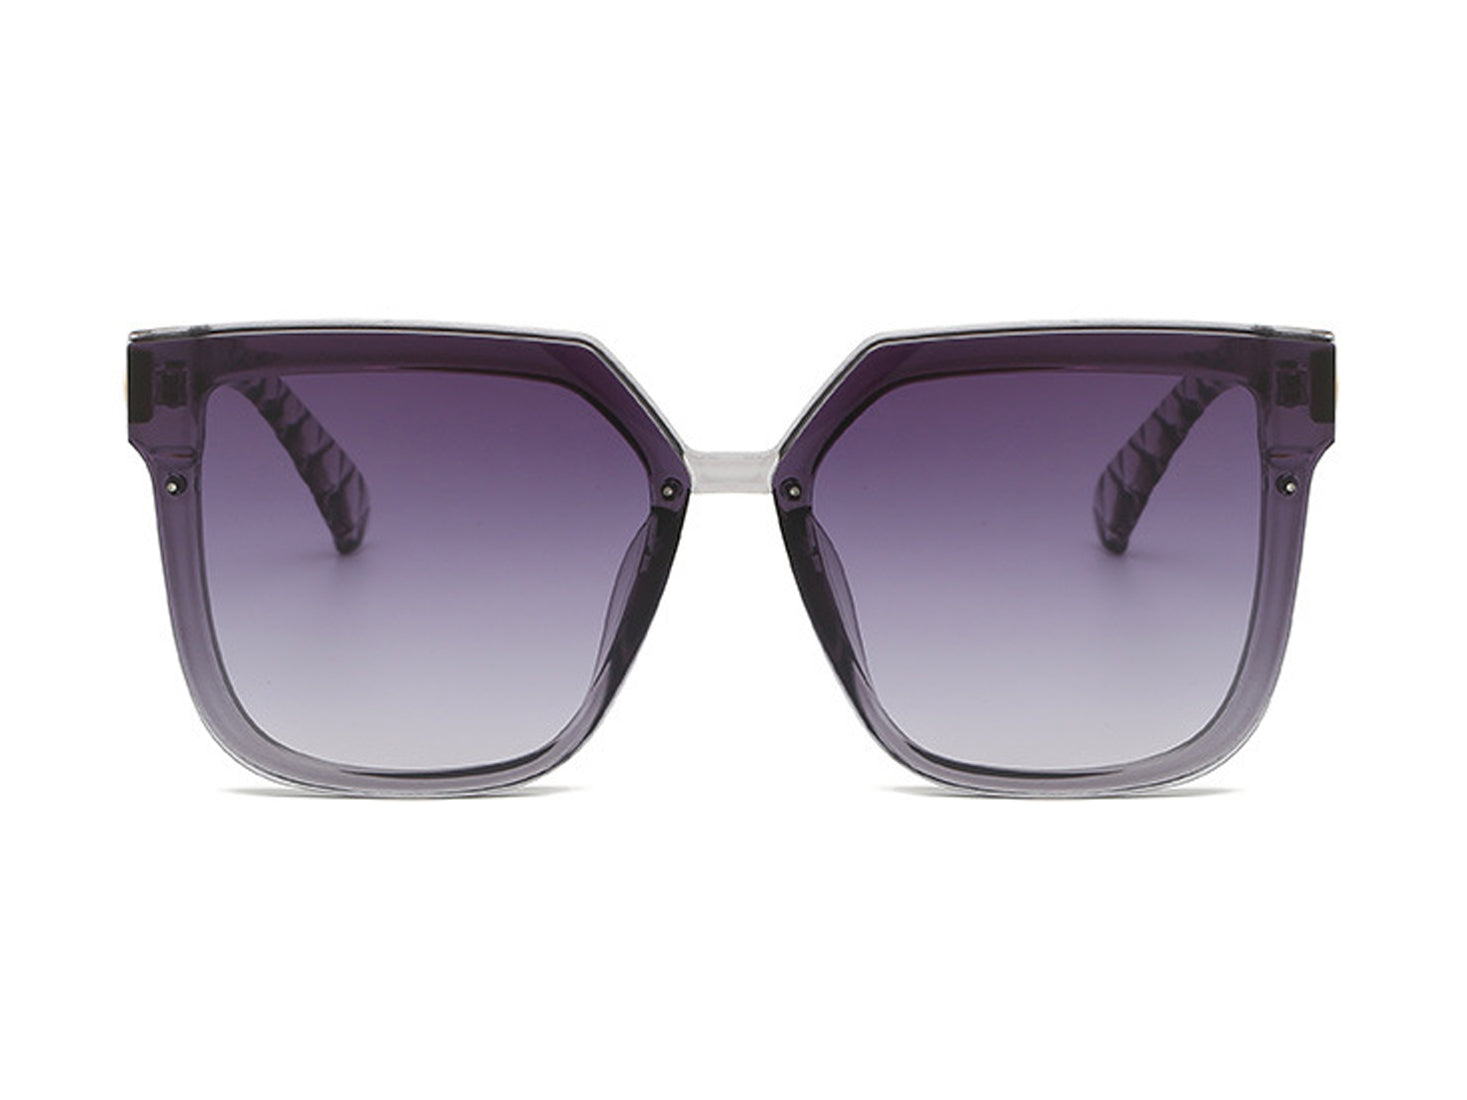 2187 - Women Classic Cat Eye Fashion Sunglasses - Iris Fashion Inc. | Wholesale Sunglasses and Glasses